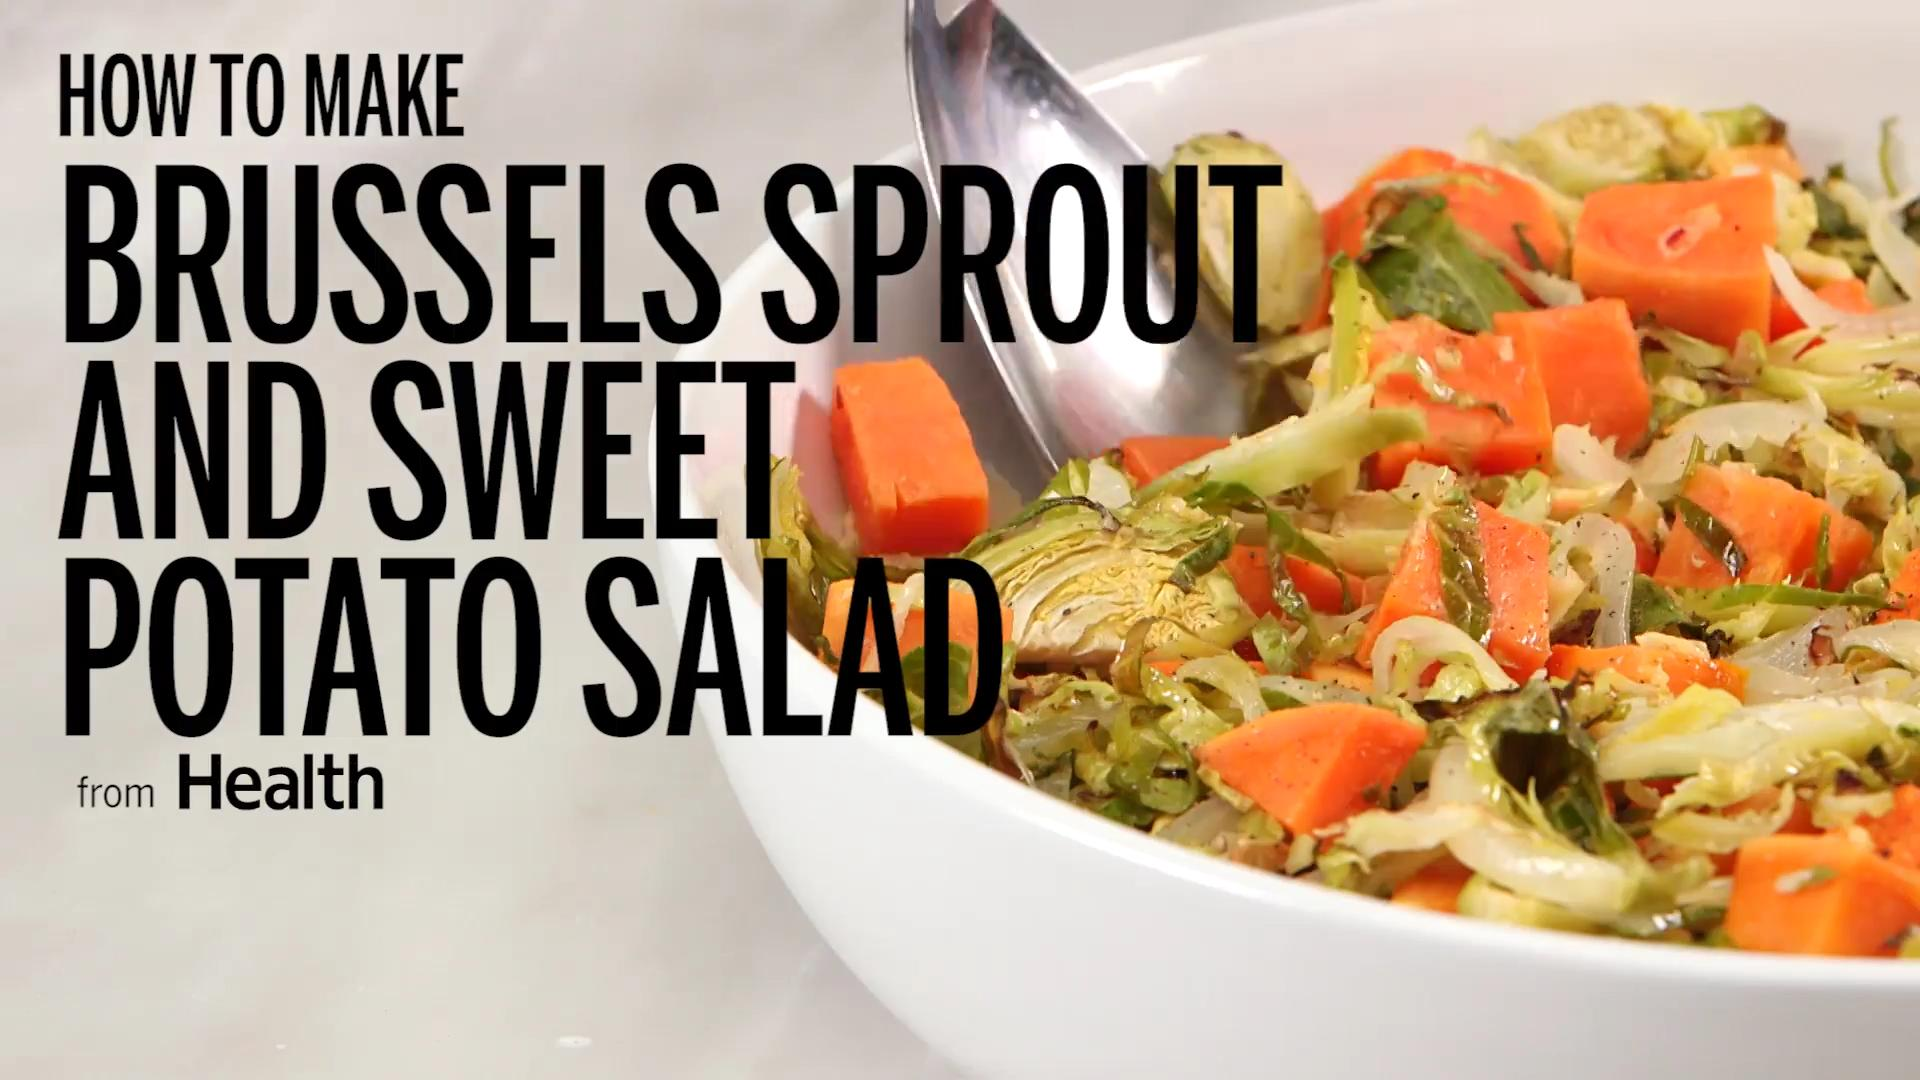 Brussels Sprout and Sweet Potato Salad Recipe - Health